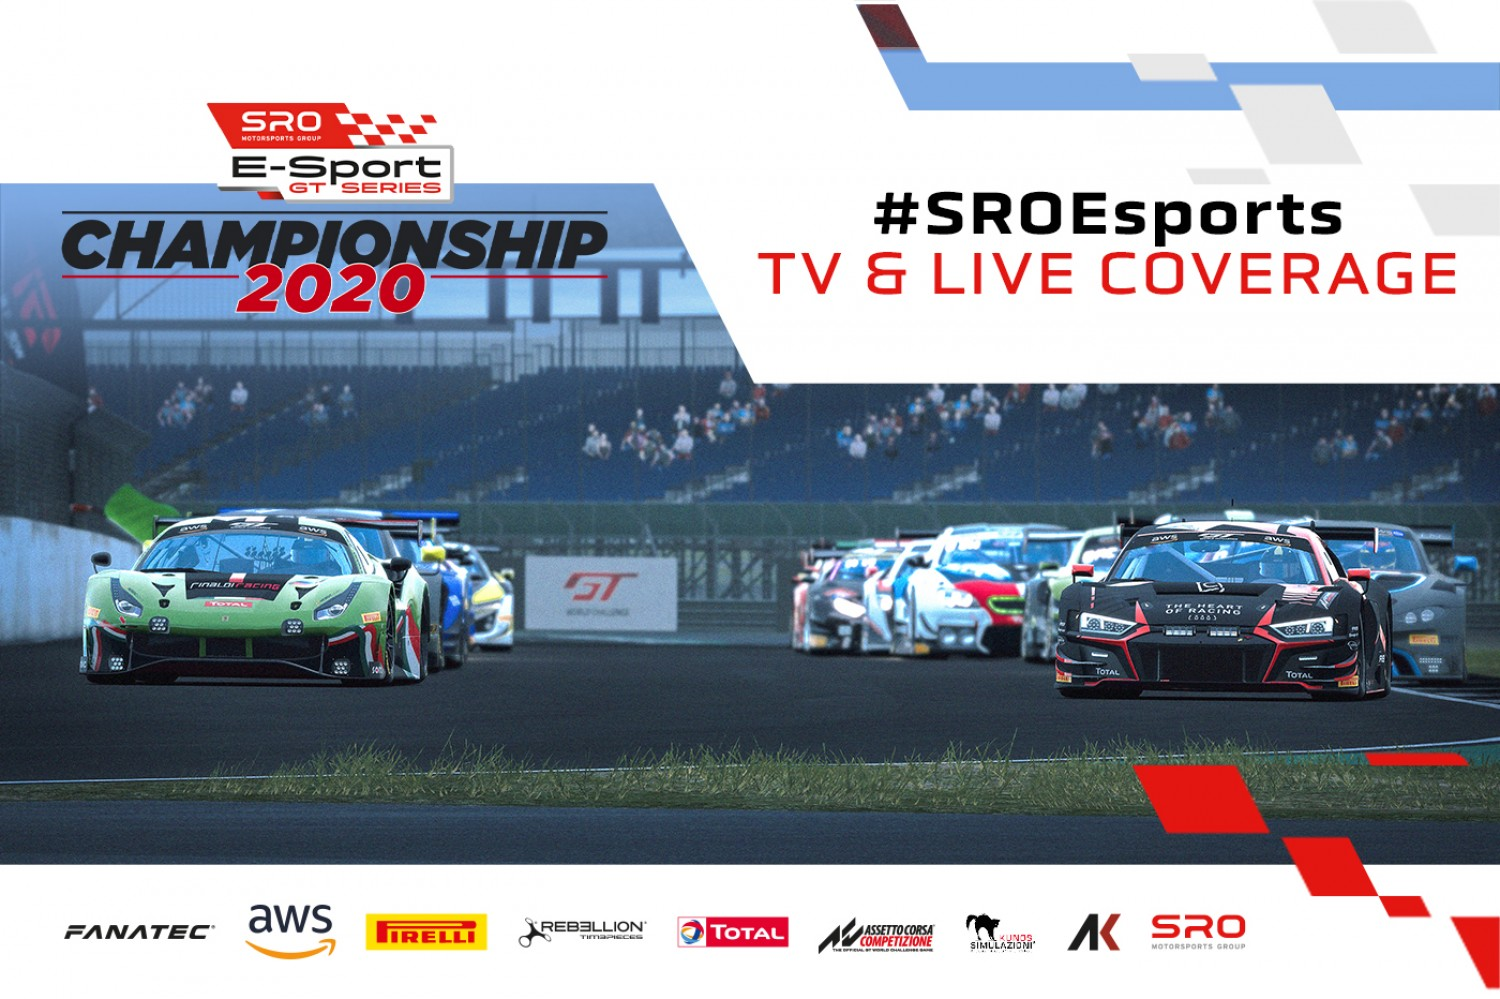 SRO E-Sport GT Series confirms extensive television and online coverage for 2020 championship